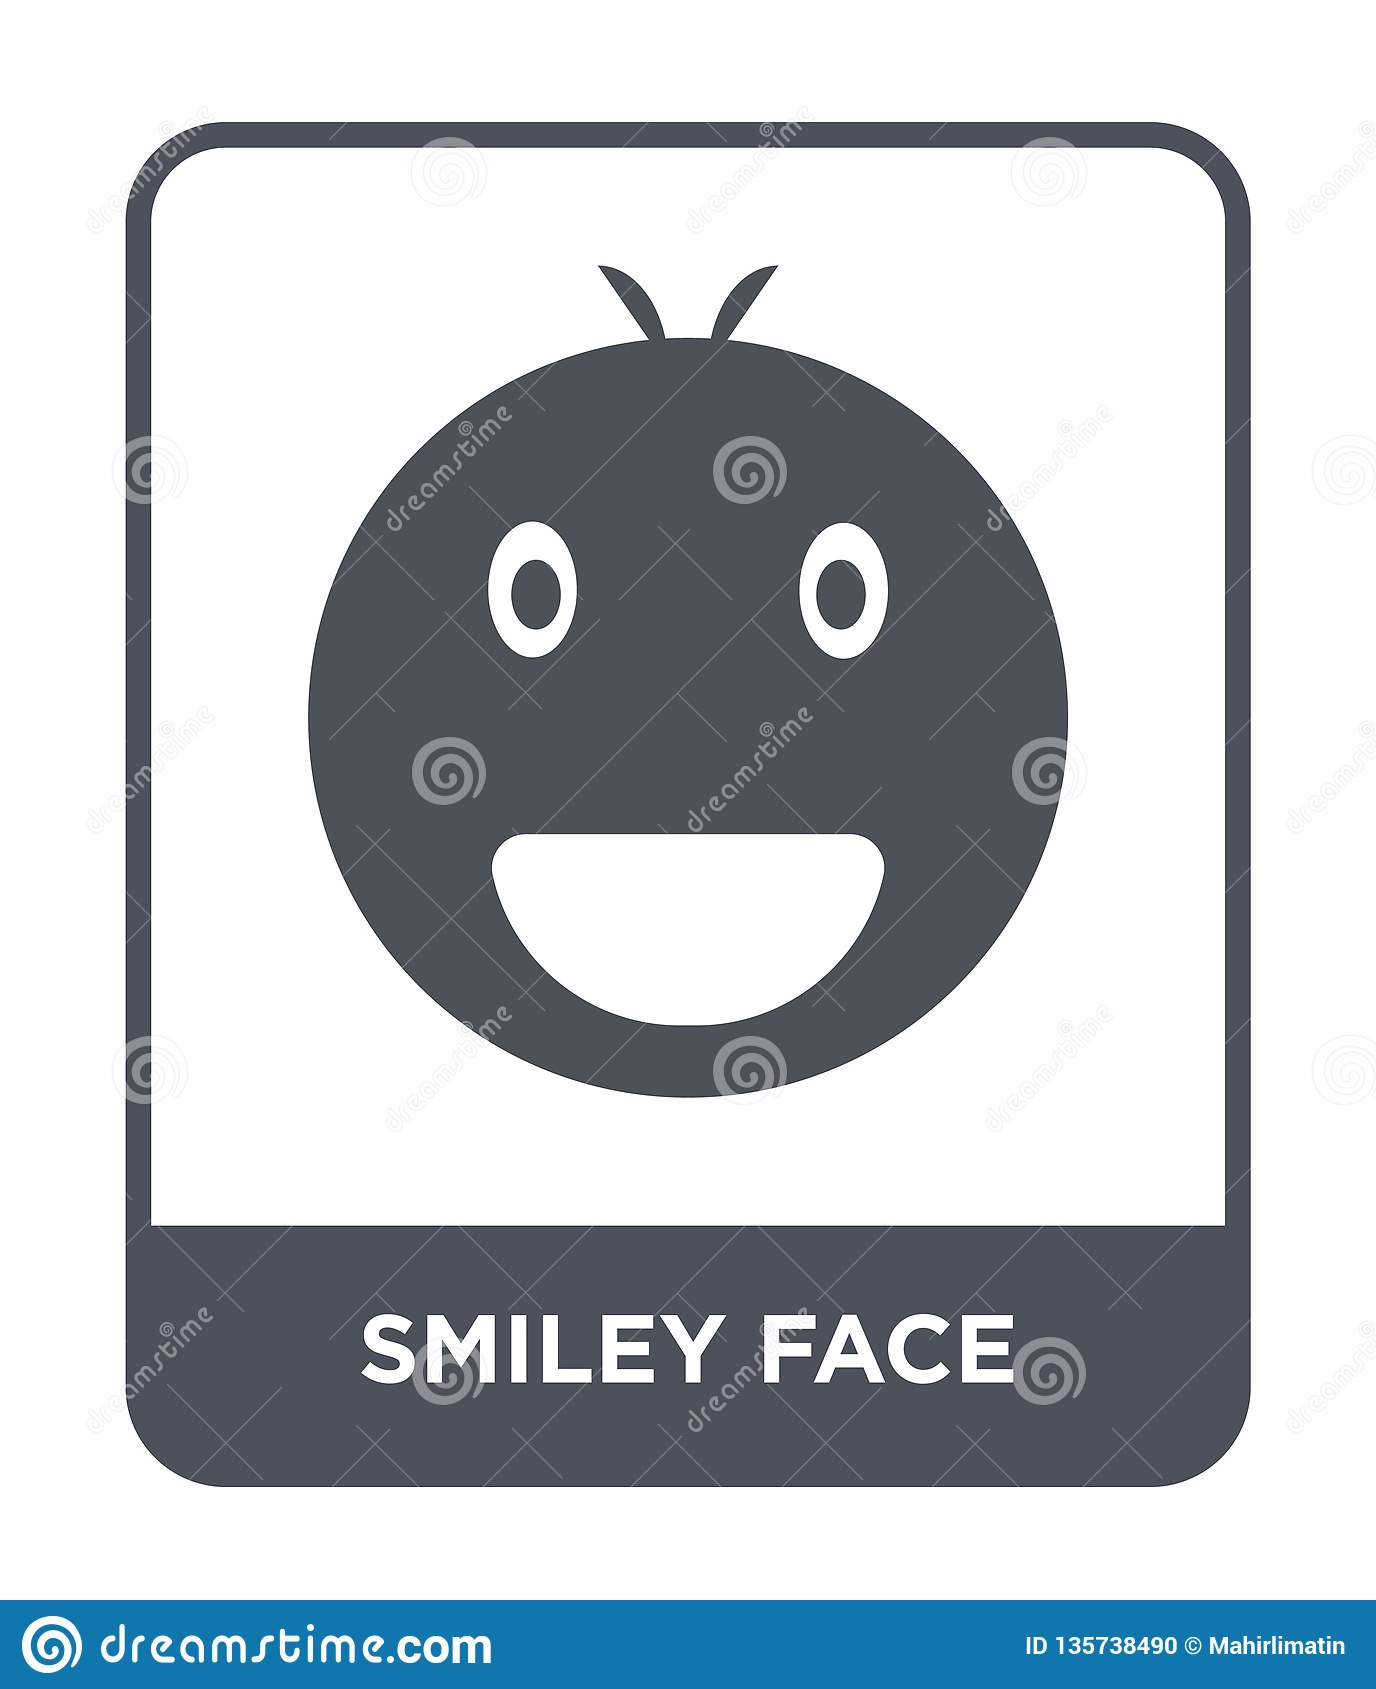 smiley face icon in trendy design style. smiley face icon isolated on white background. smiley face vector icon simple and modern